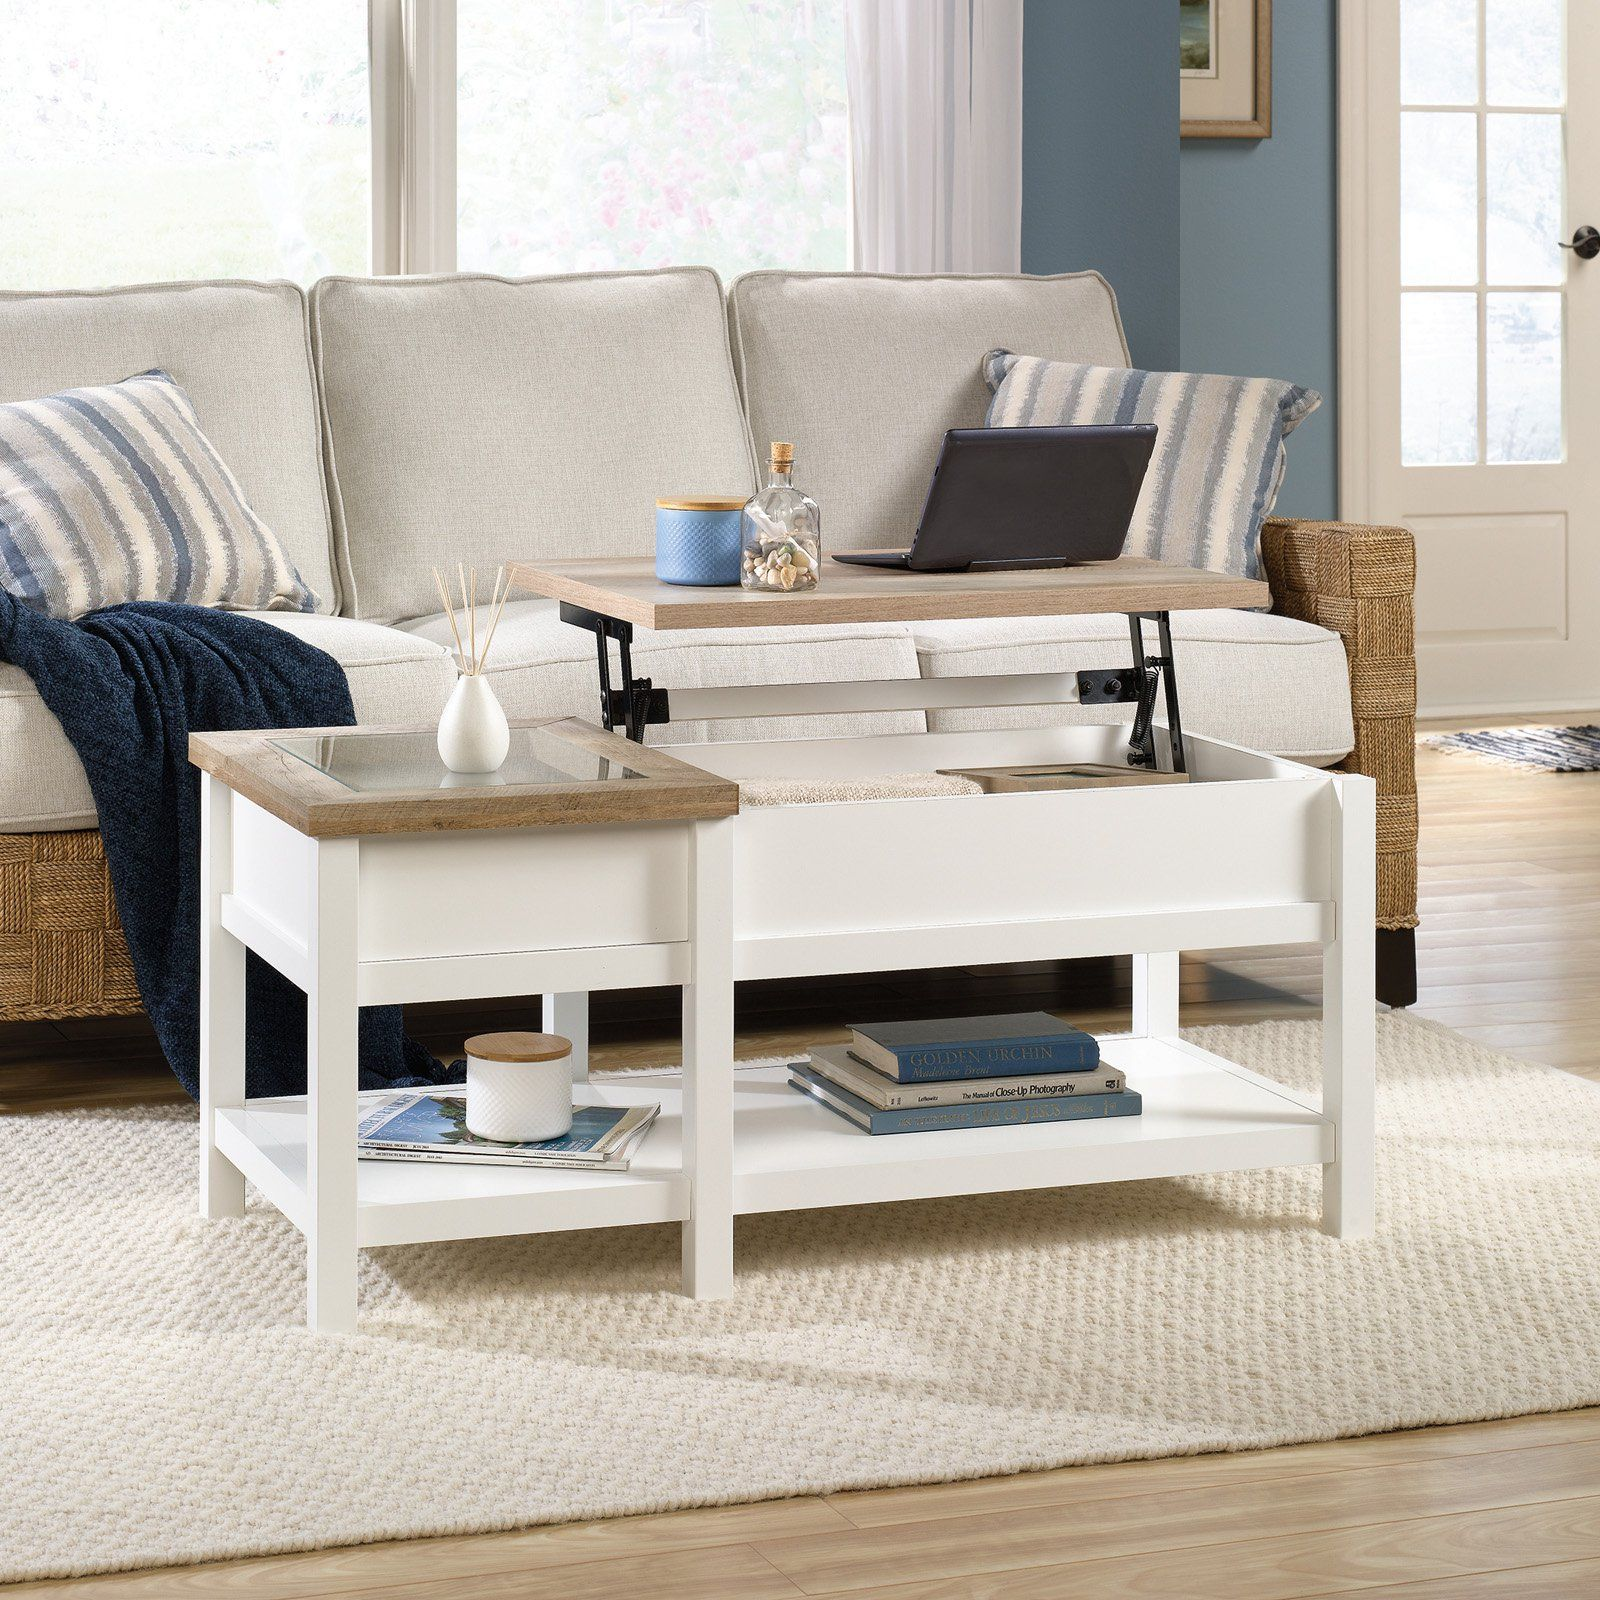 Sauder Cottage Road Lift Top Coffee Table In 2019 Lift Top